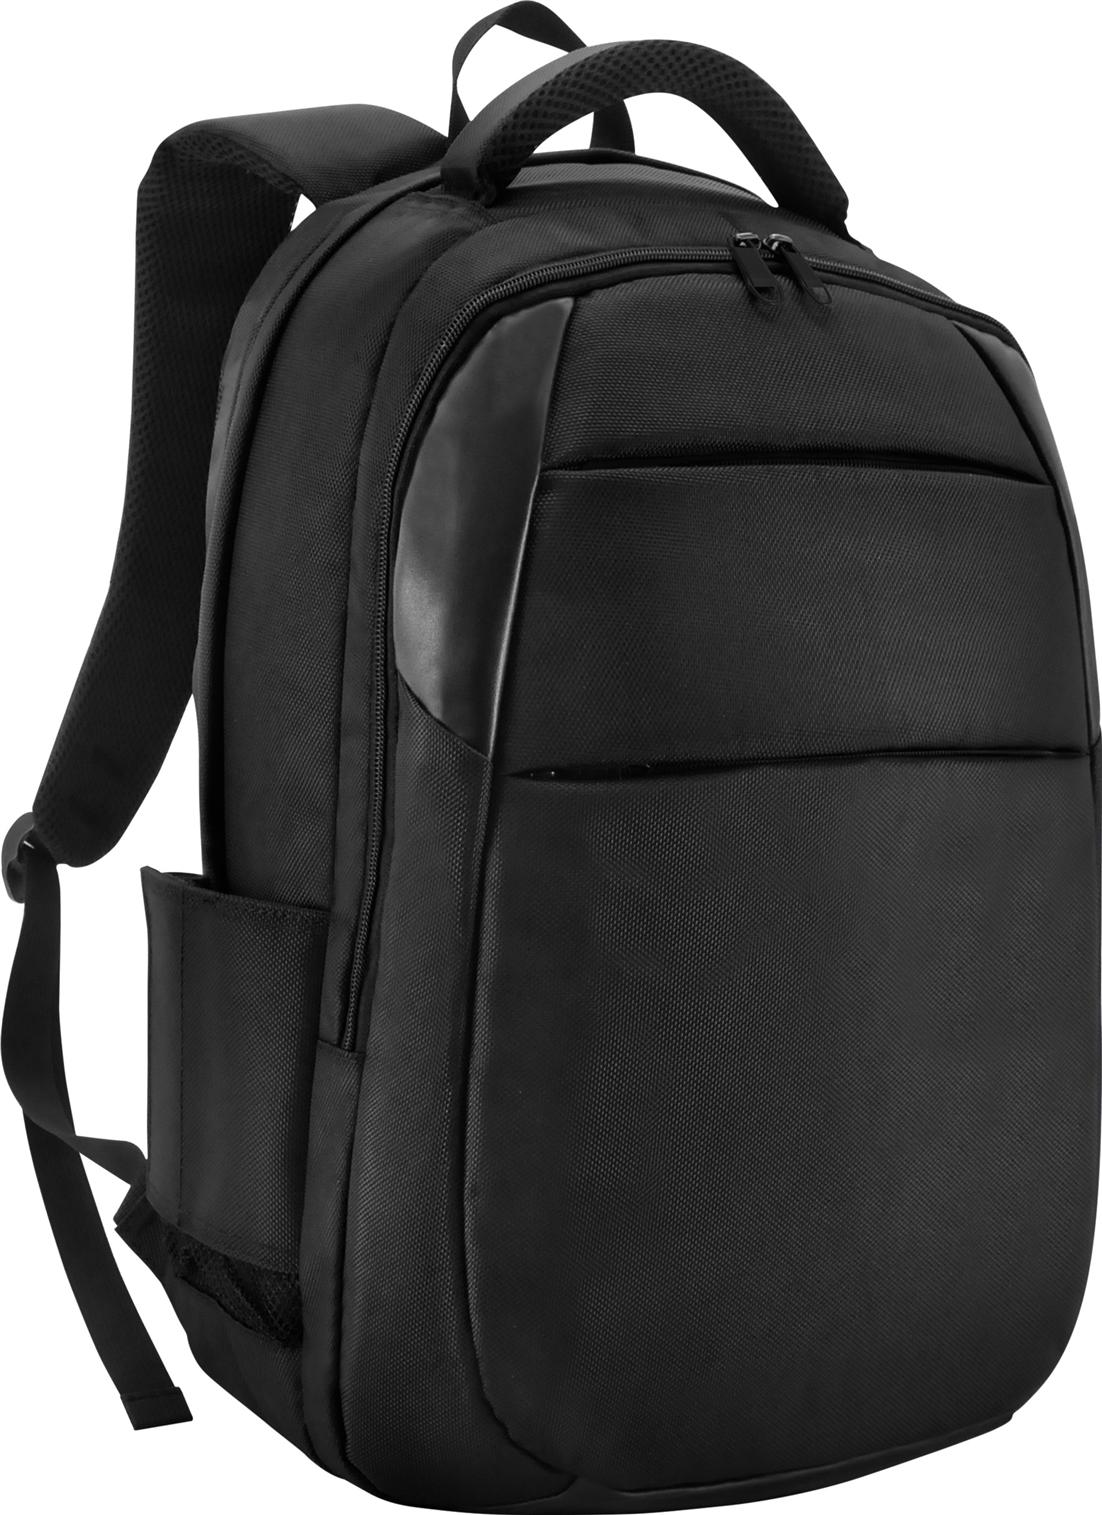 Black Laptop Backpack ZLAFY6yb